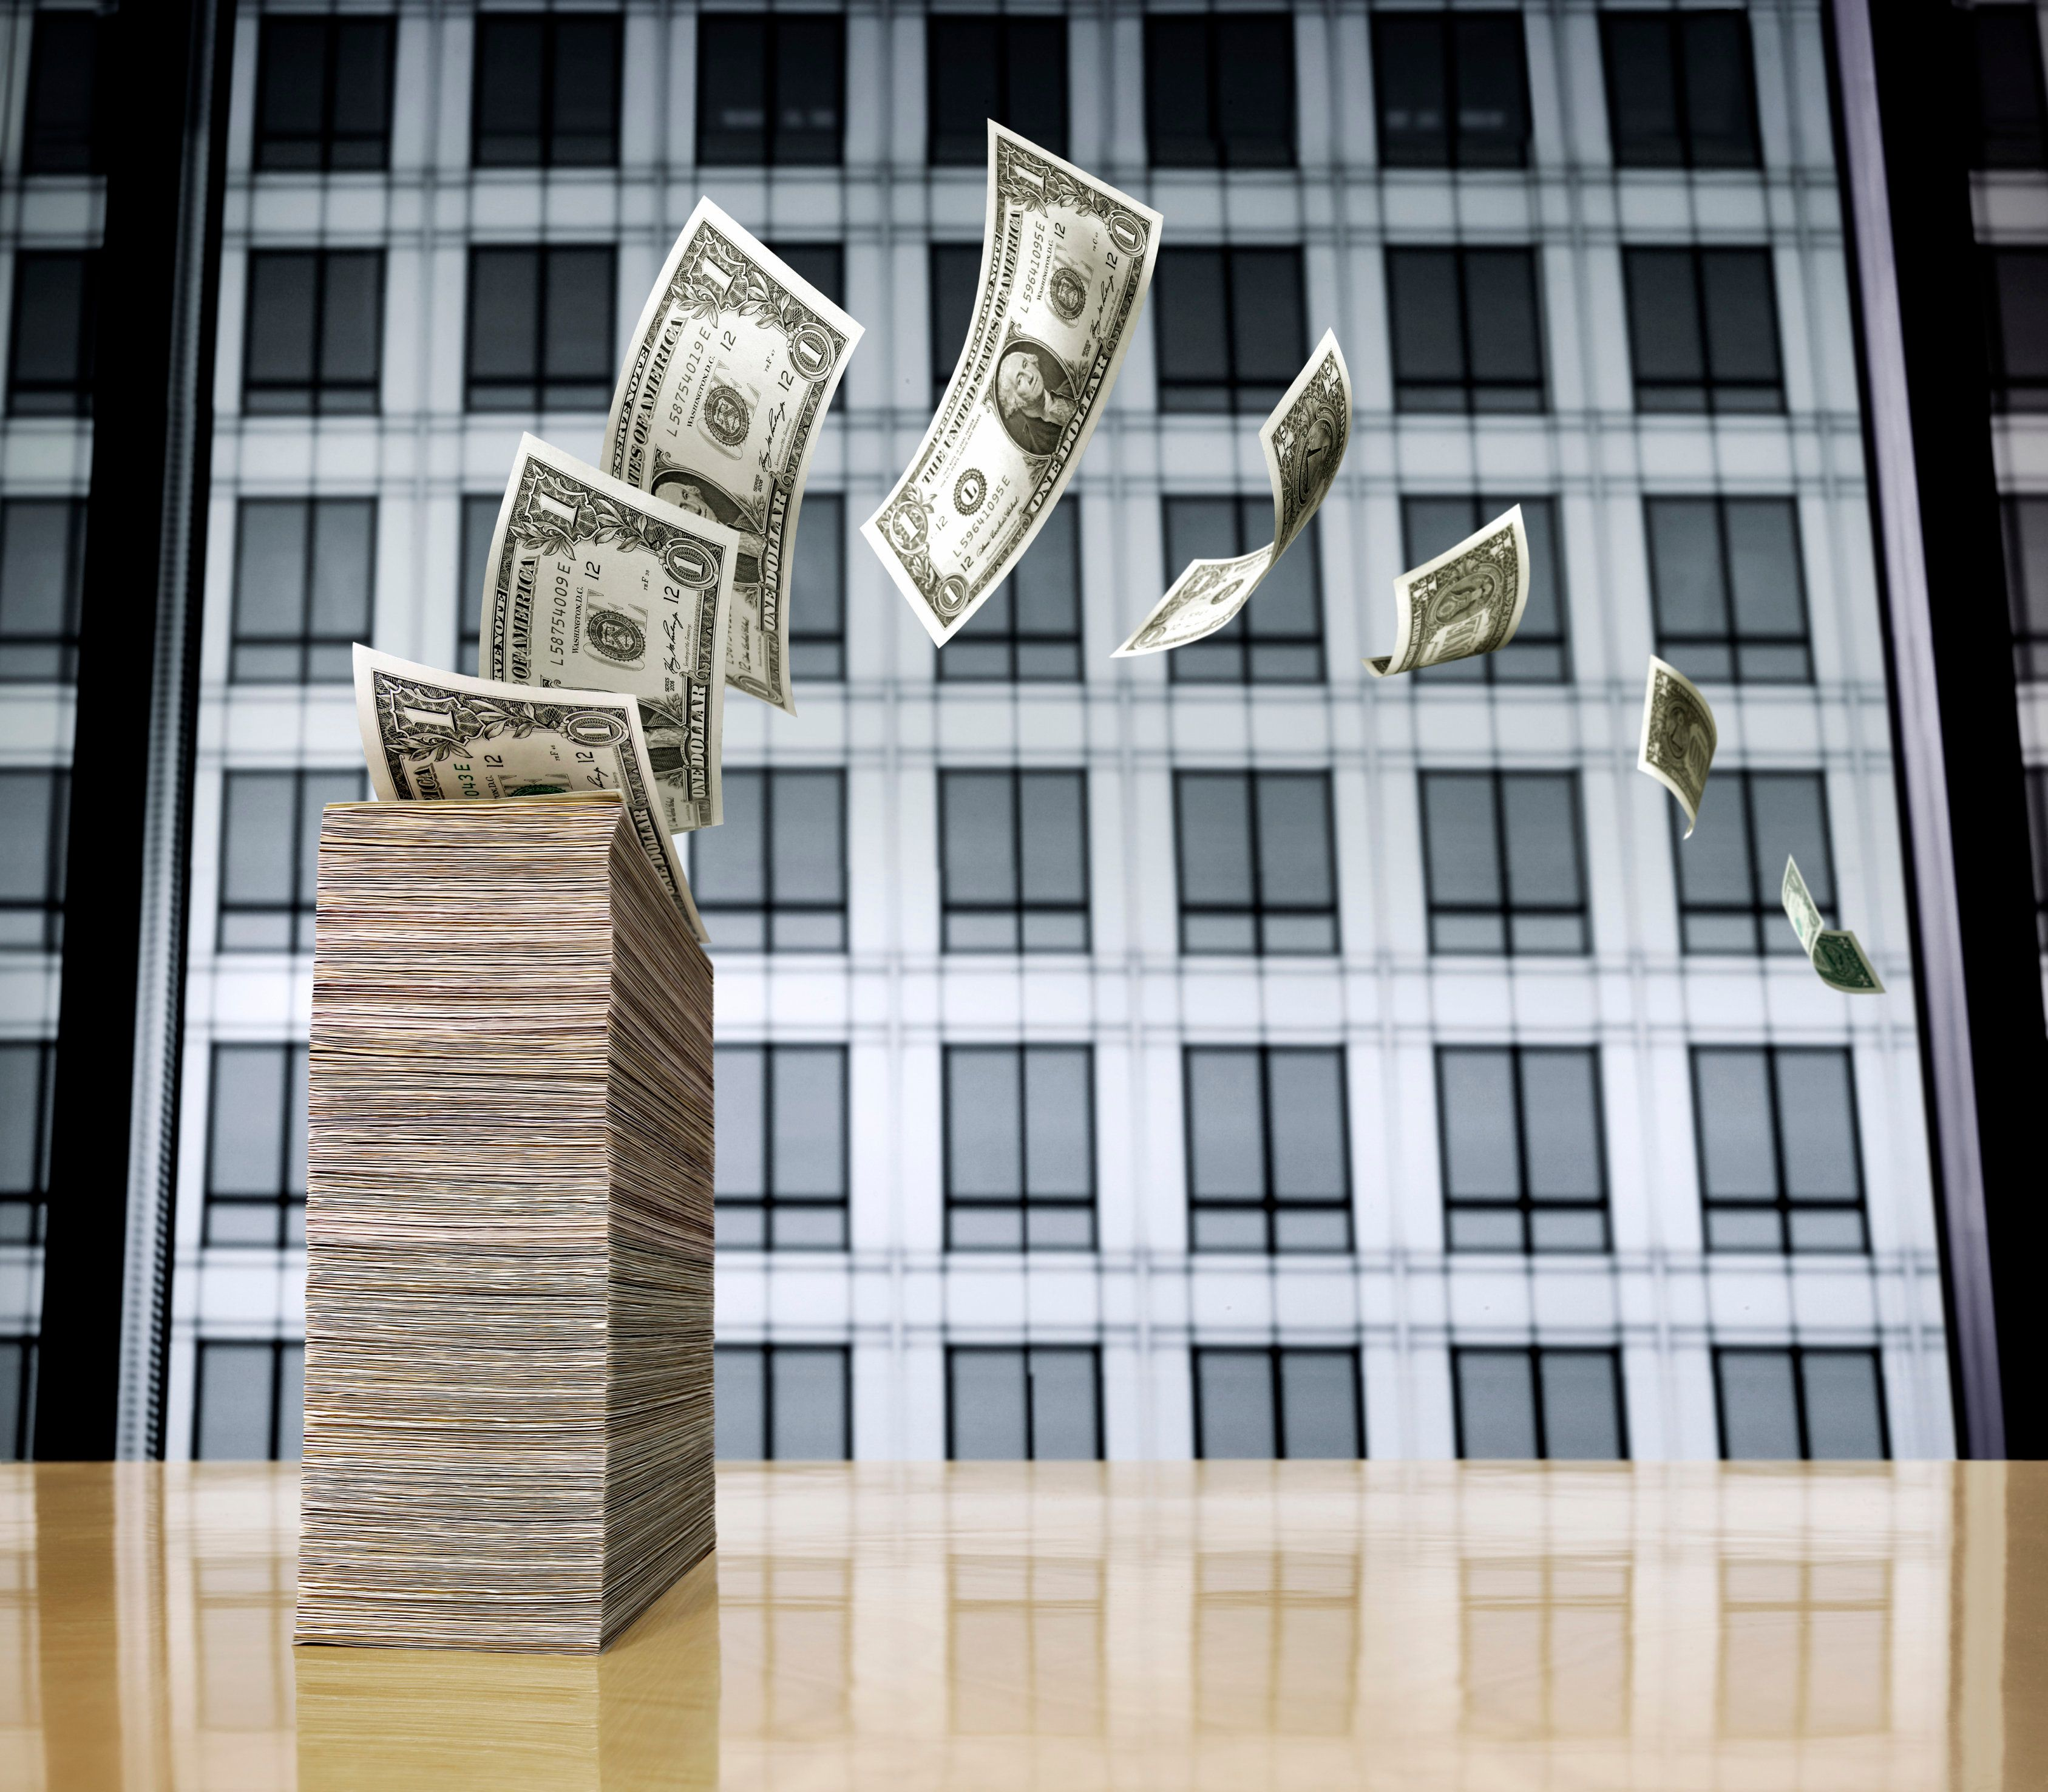 A stack of one dollar bills on a highly polished table in a high rise building with an adjacent building as a background.  The bills are blowing away from camera.